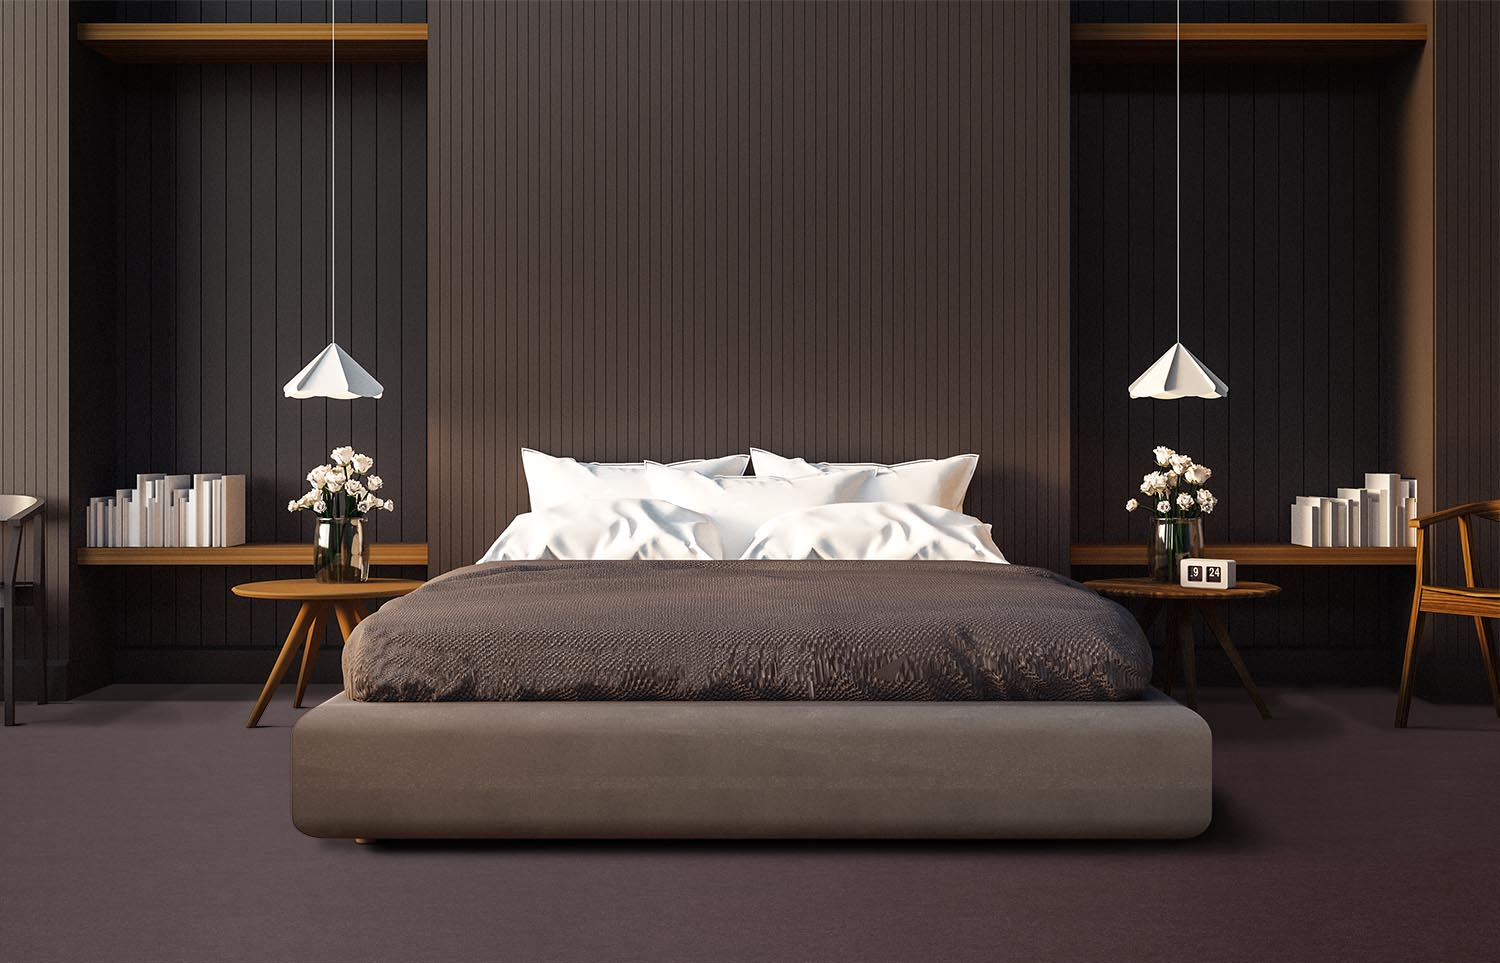 Softology - S201 - Swoon contemporary bedroom